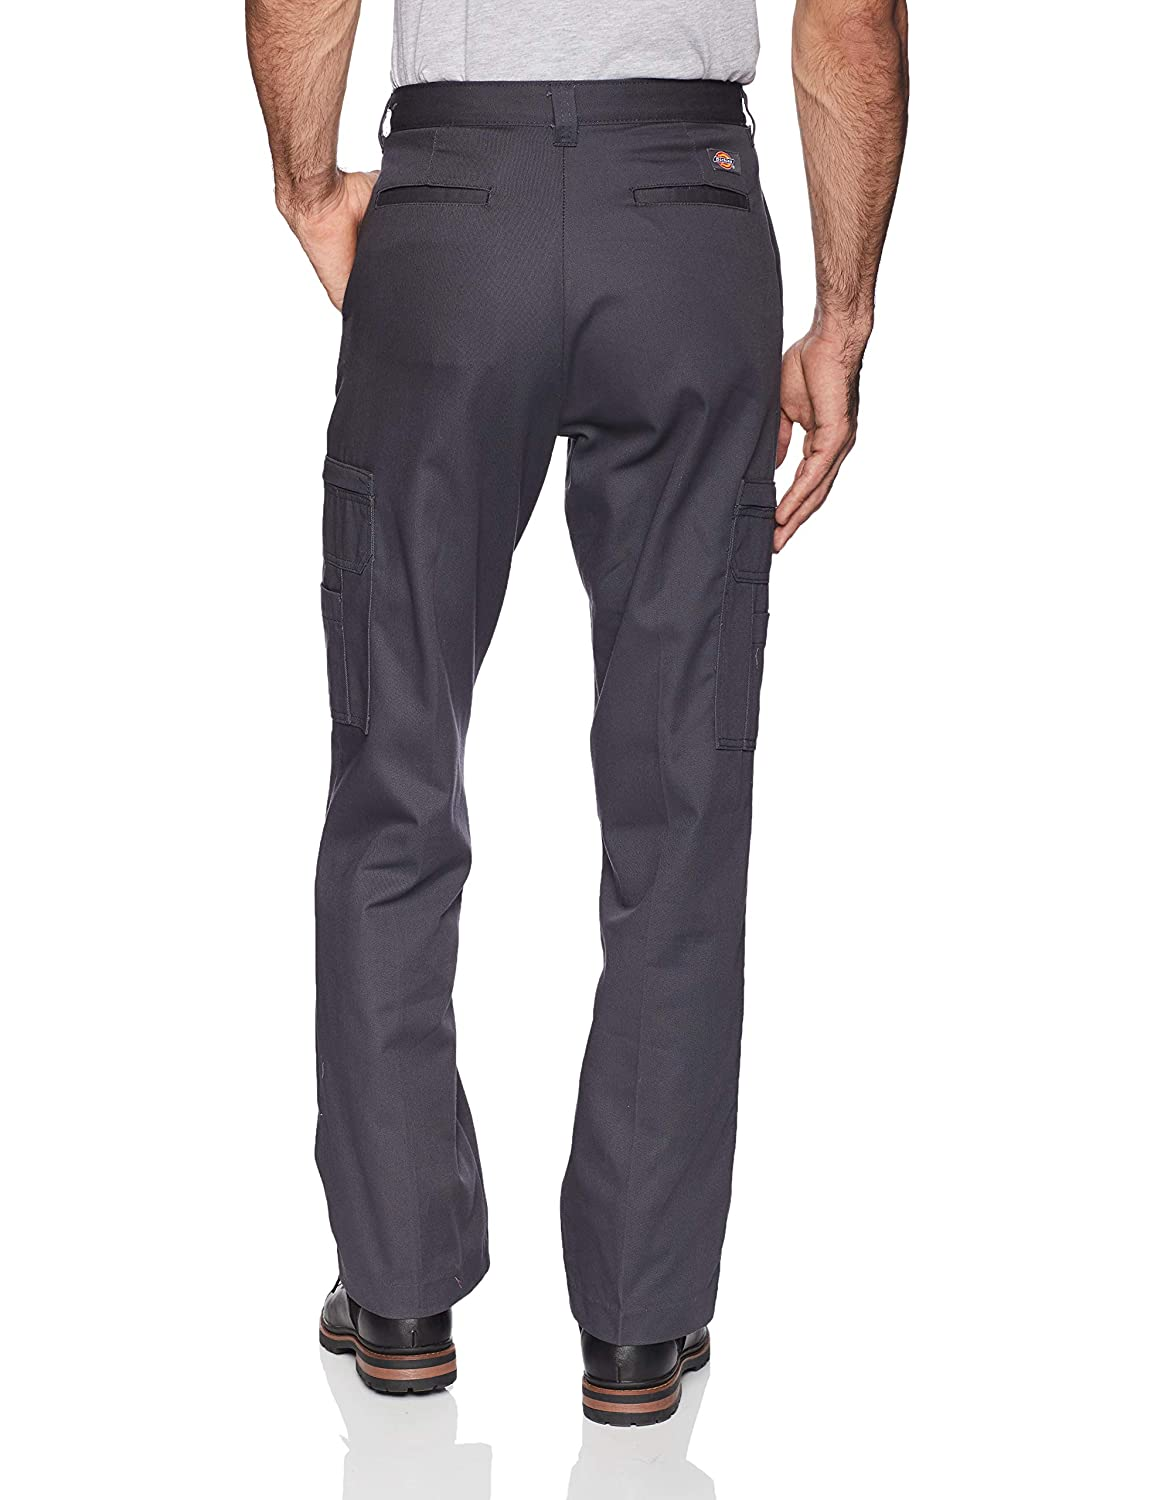 Dickies Mens Industrial Relaxed Fit Cotton Cargo Pants